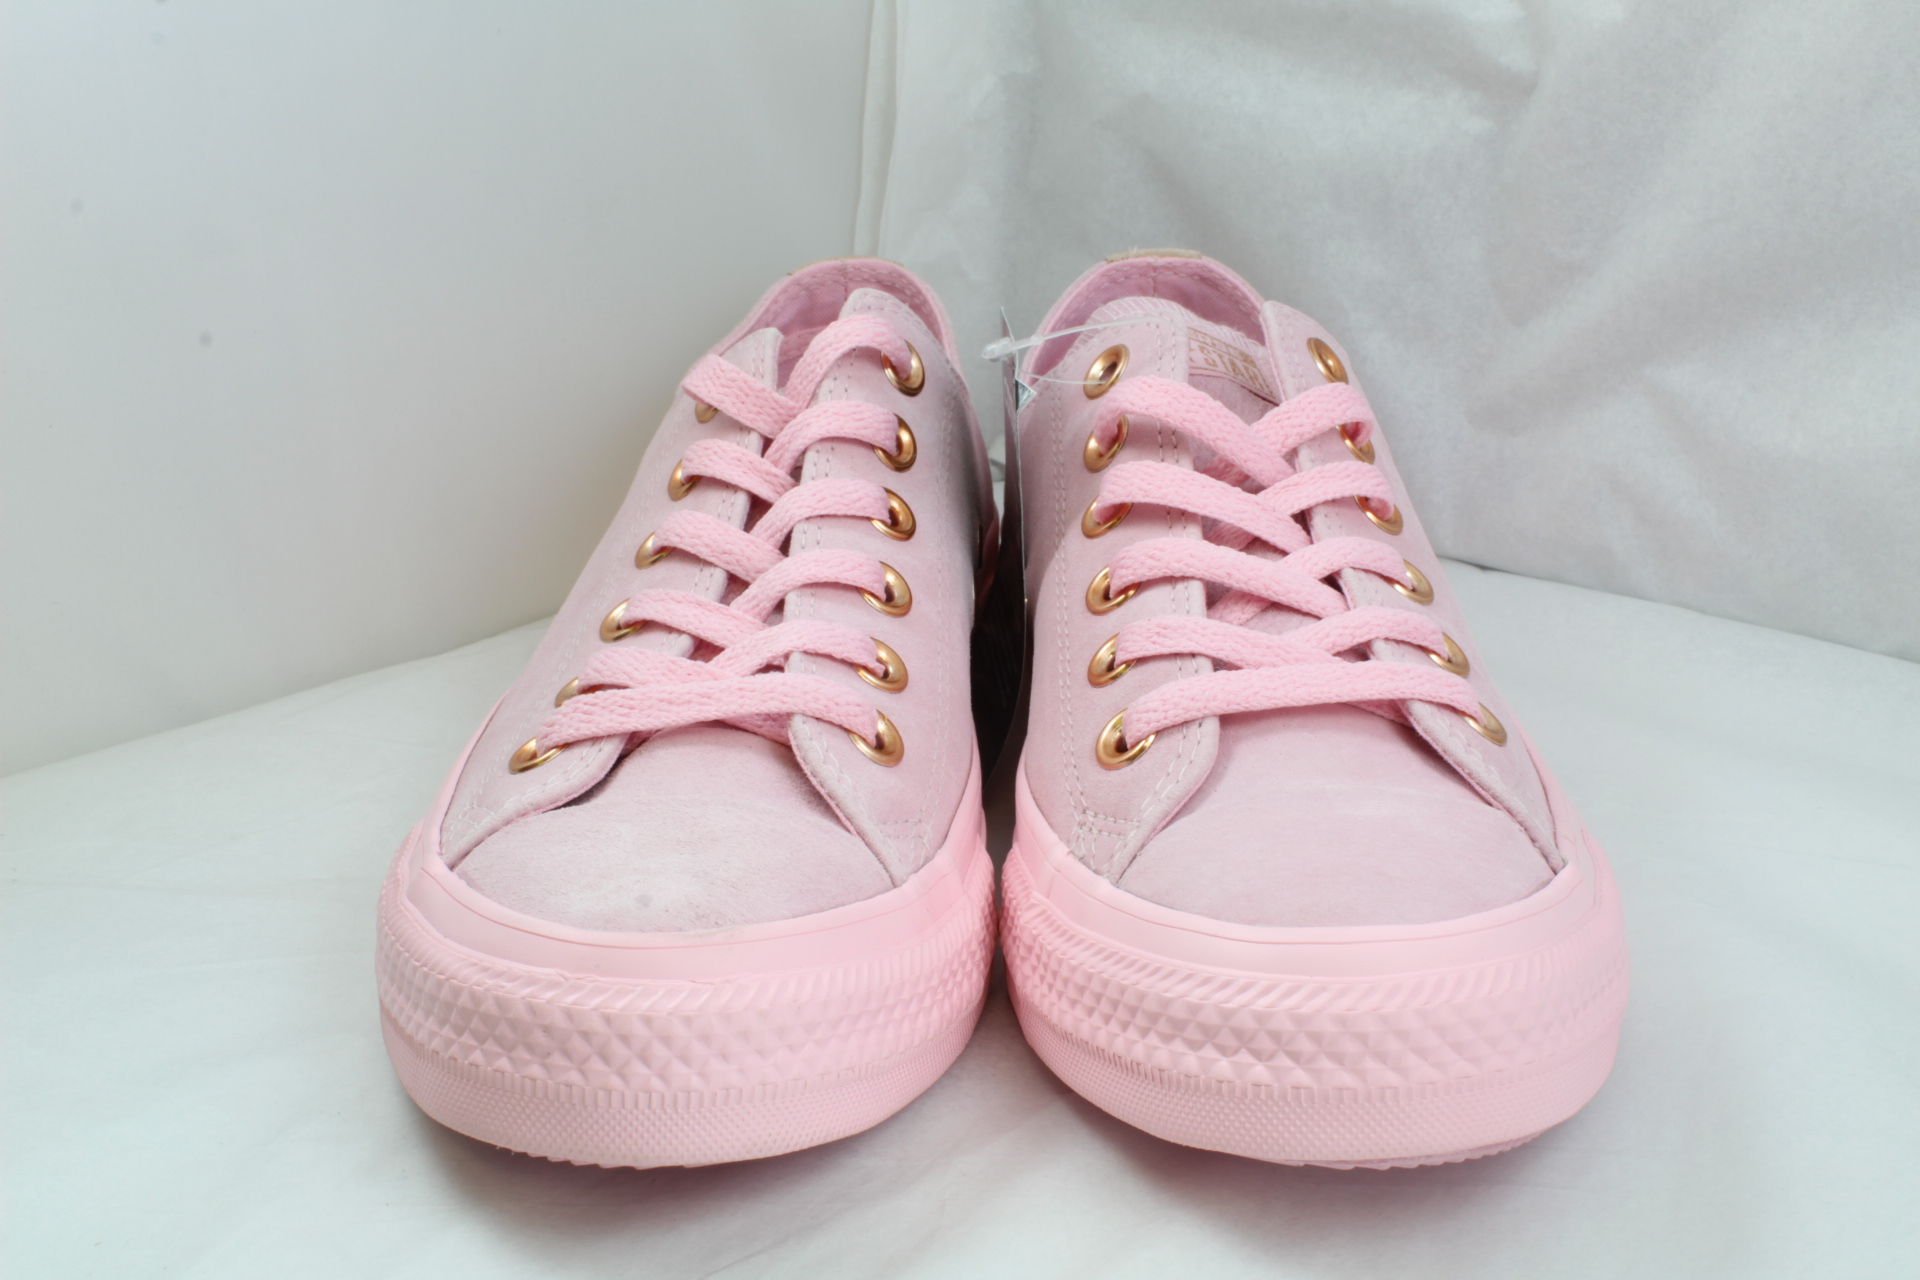 555b5429c04 Sentinel Womens Converse Pink Suede Lace Up Trainers Size UK 5  Ex-Display